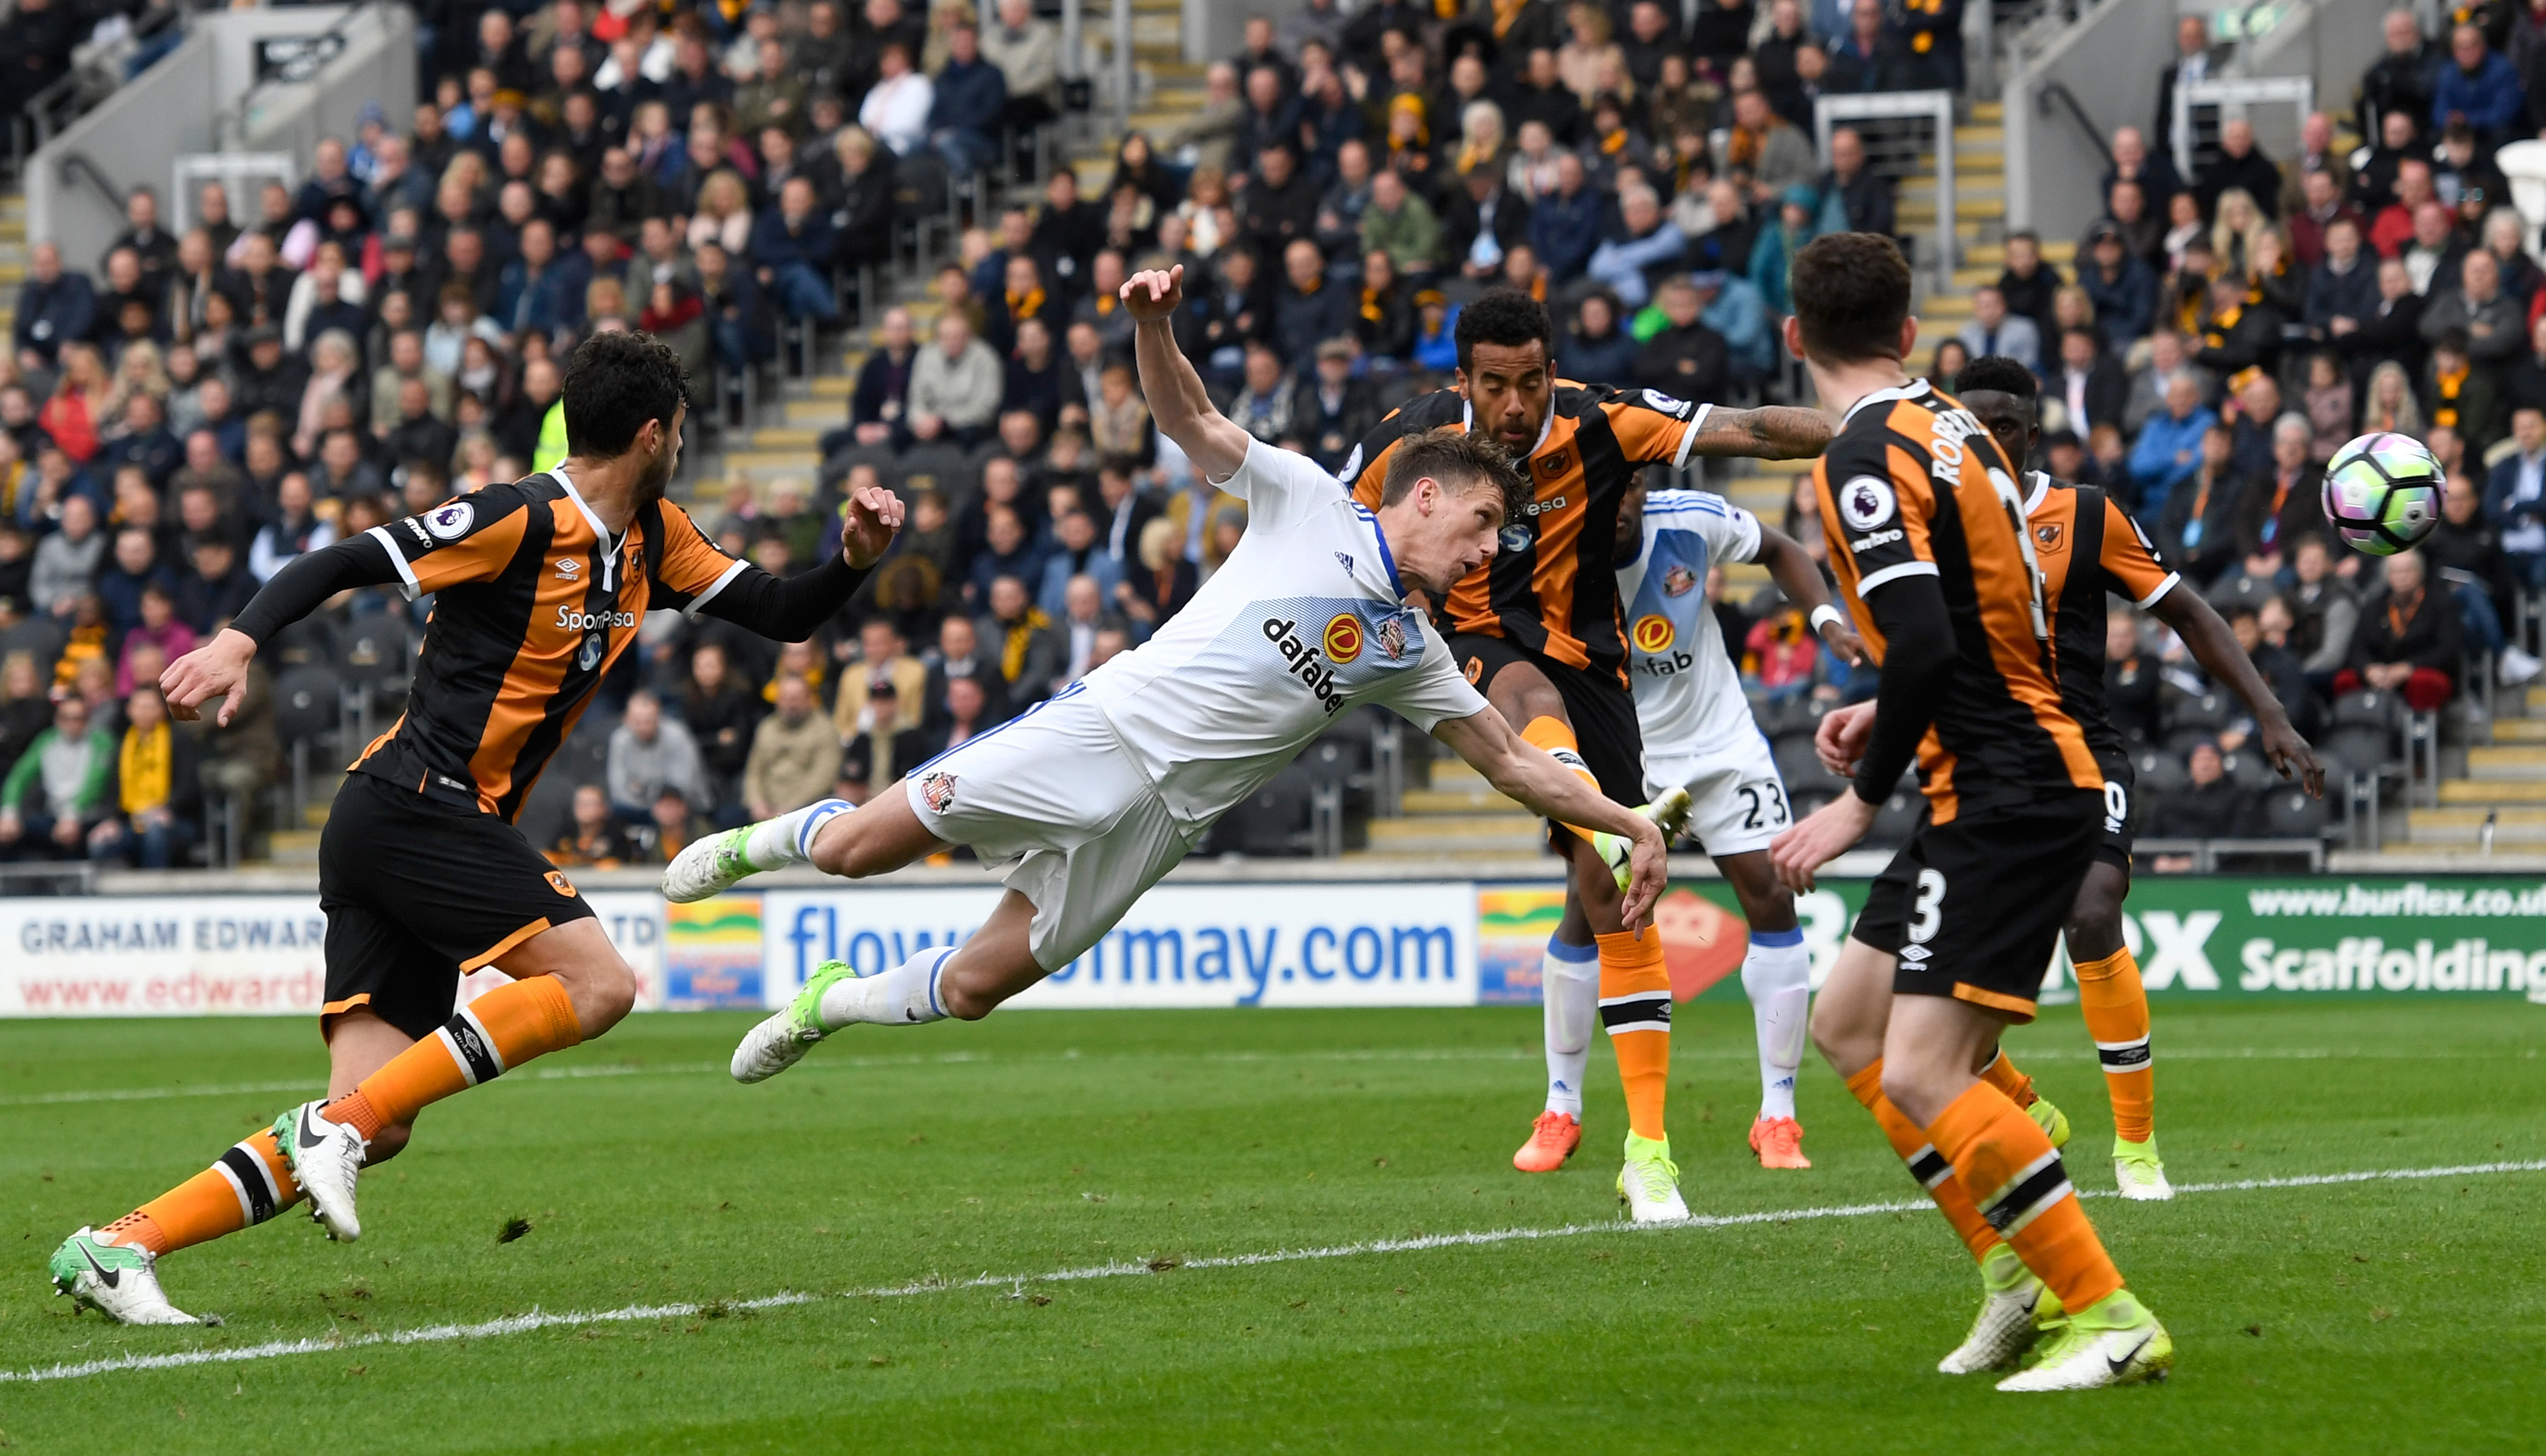 Swansea City's players took great delight in Crystal Palace's victory over Hull